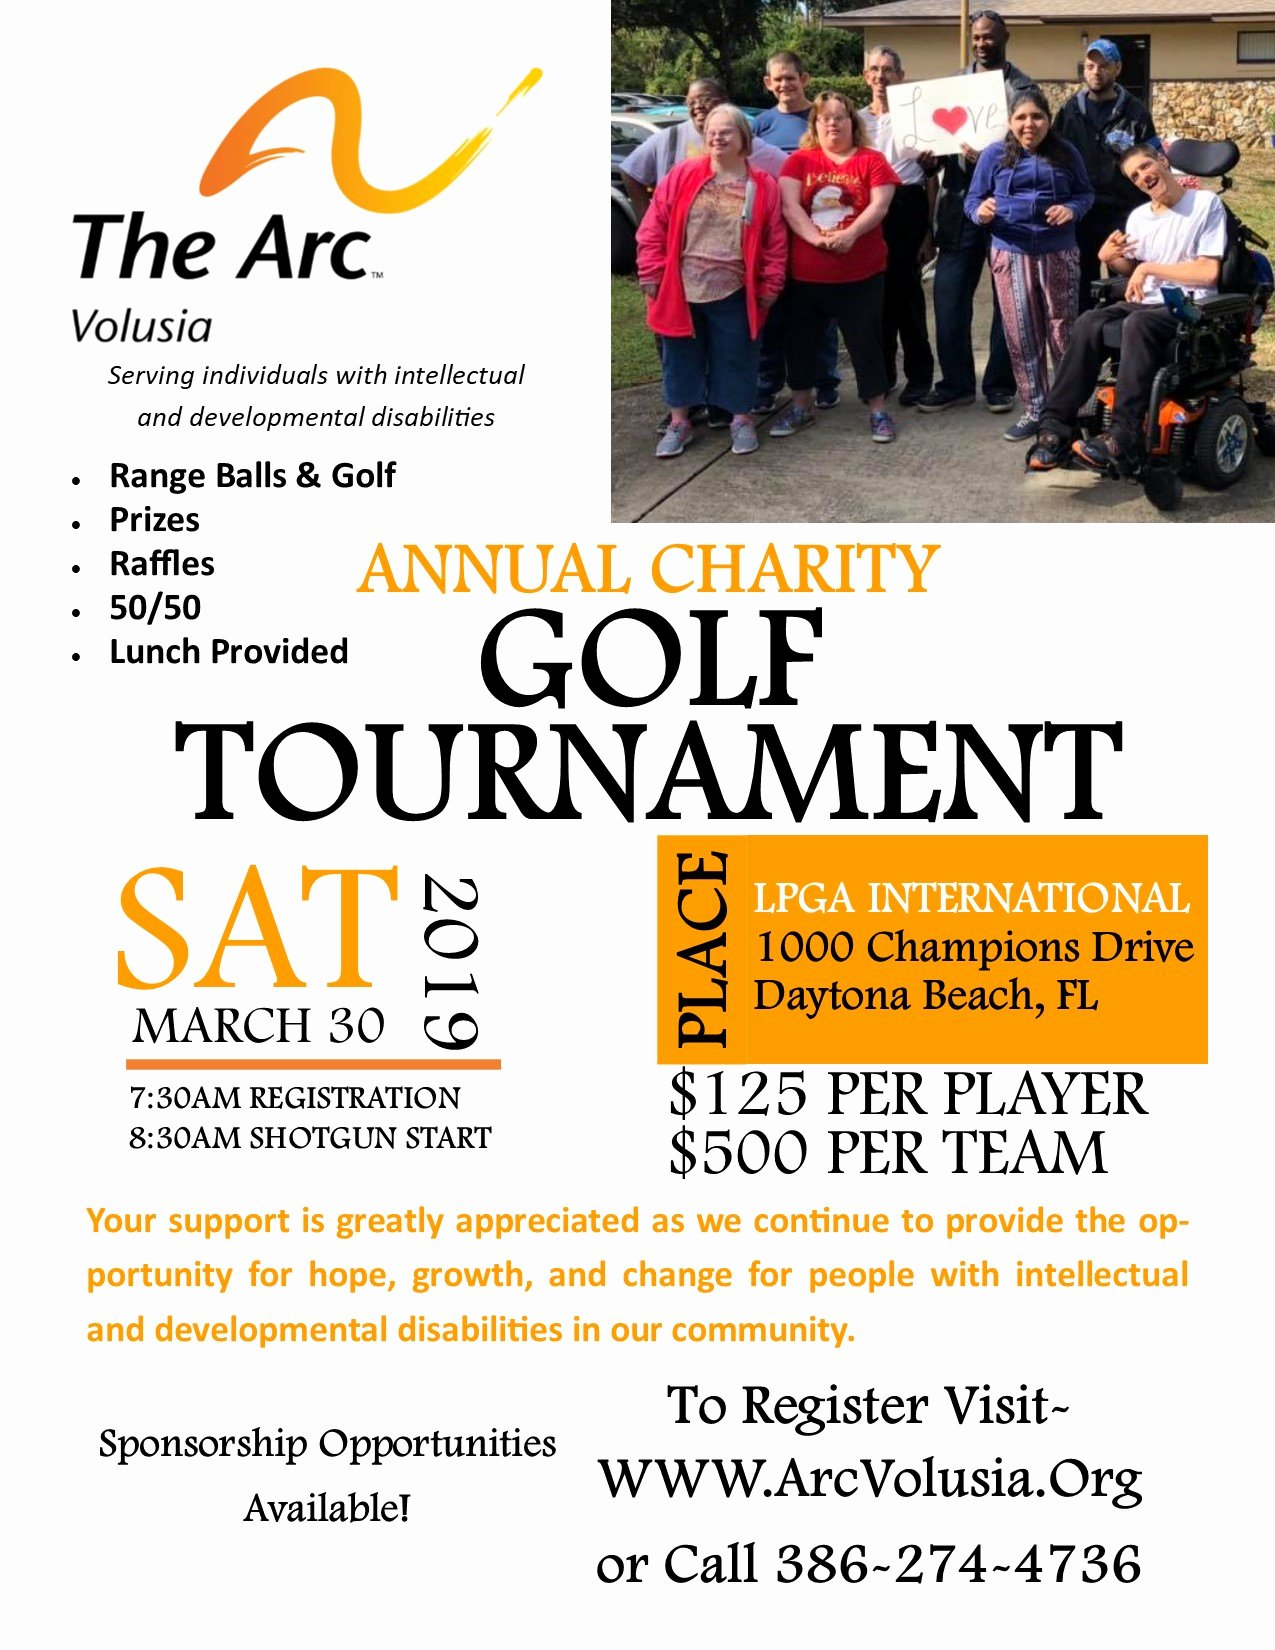 Charity Golf tournament Flyer Lovely the Arc Volusia – Providing the Opportunity for Hope Growth and Change